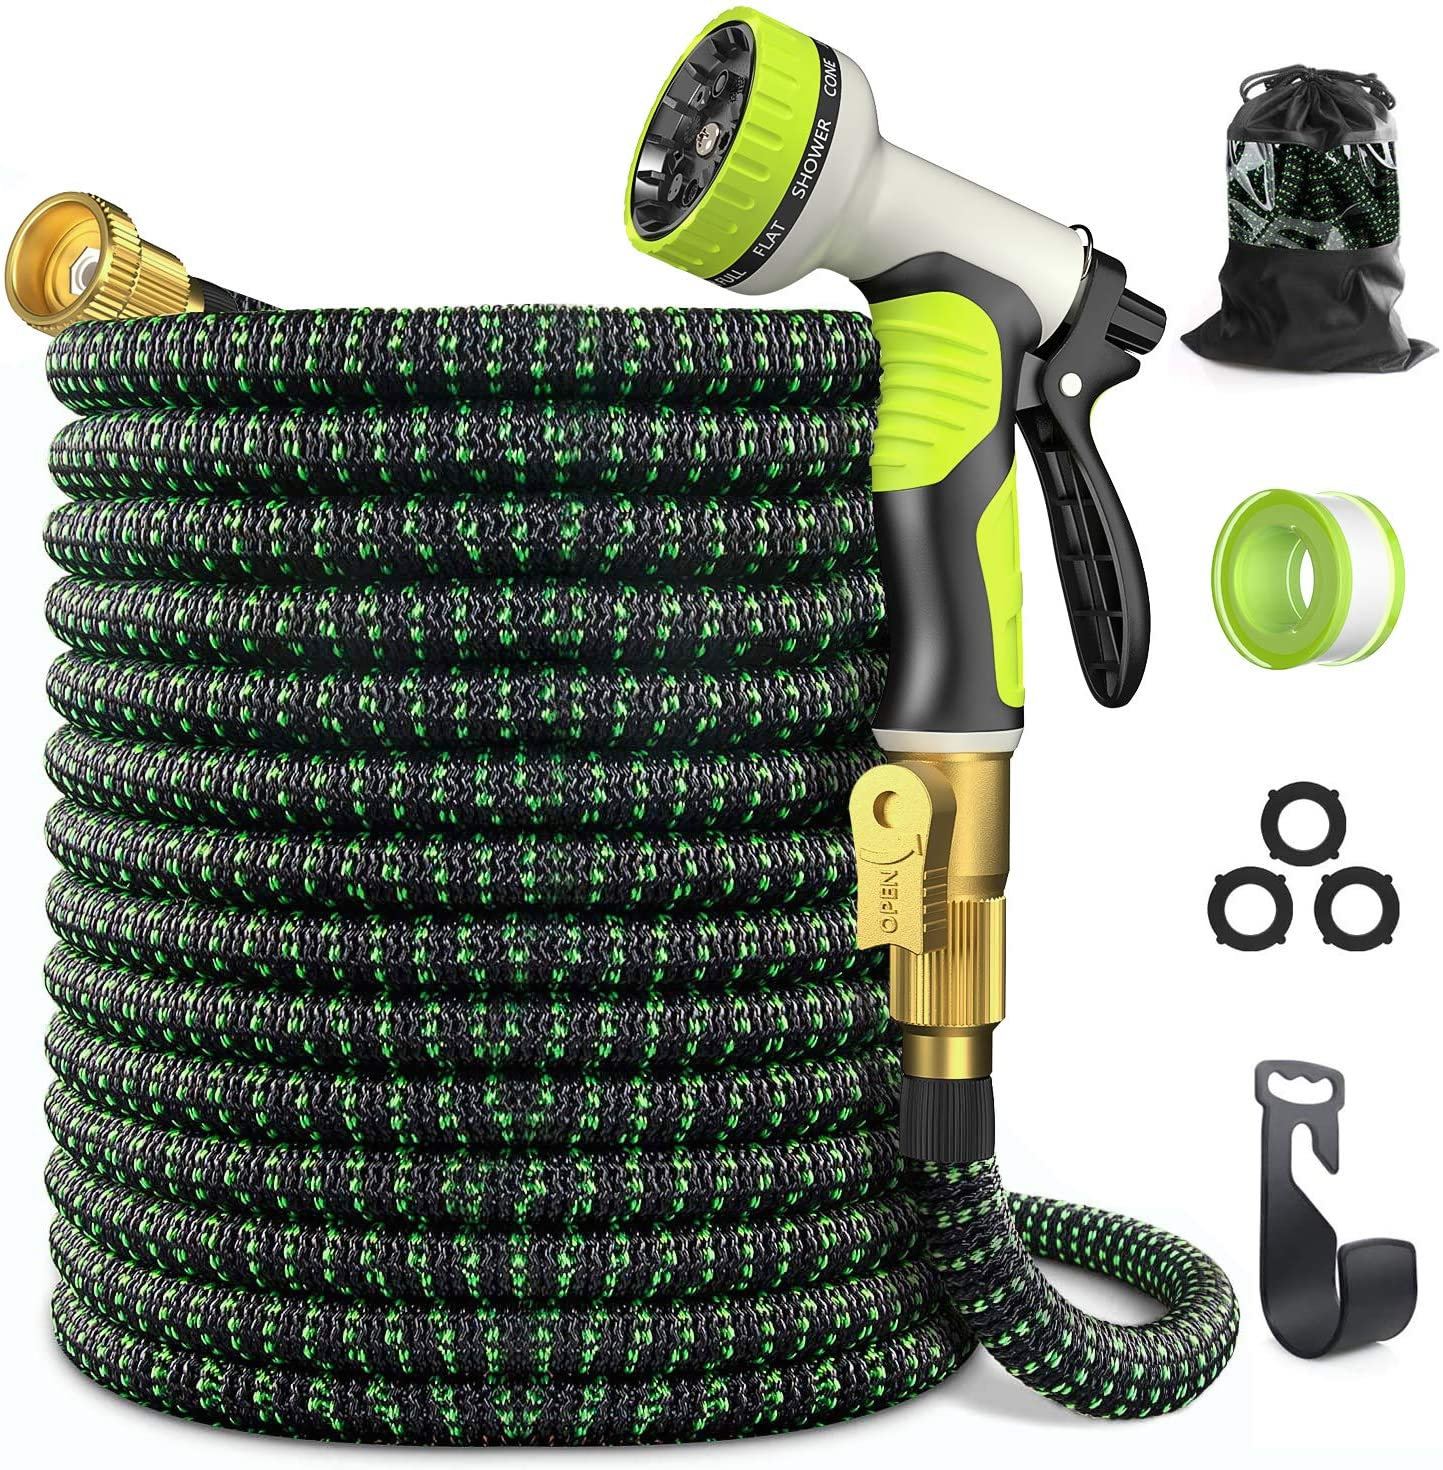 Expandable Garden Hose 50 ft - GarHose Retractable Water Hose with 10 Function Spray Nozzle, 3/4